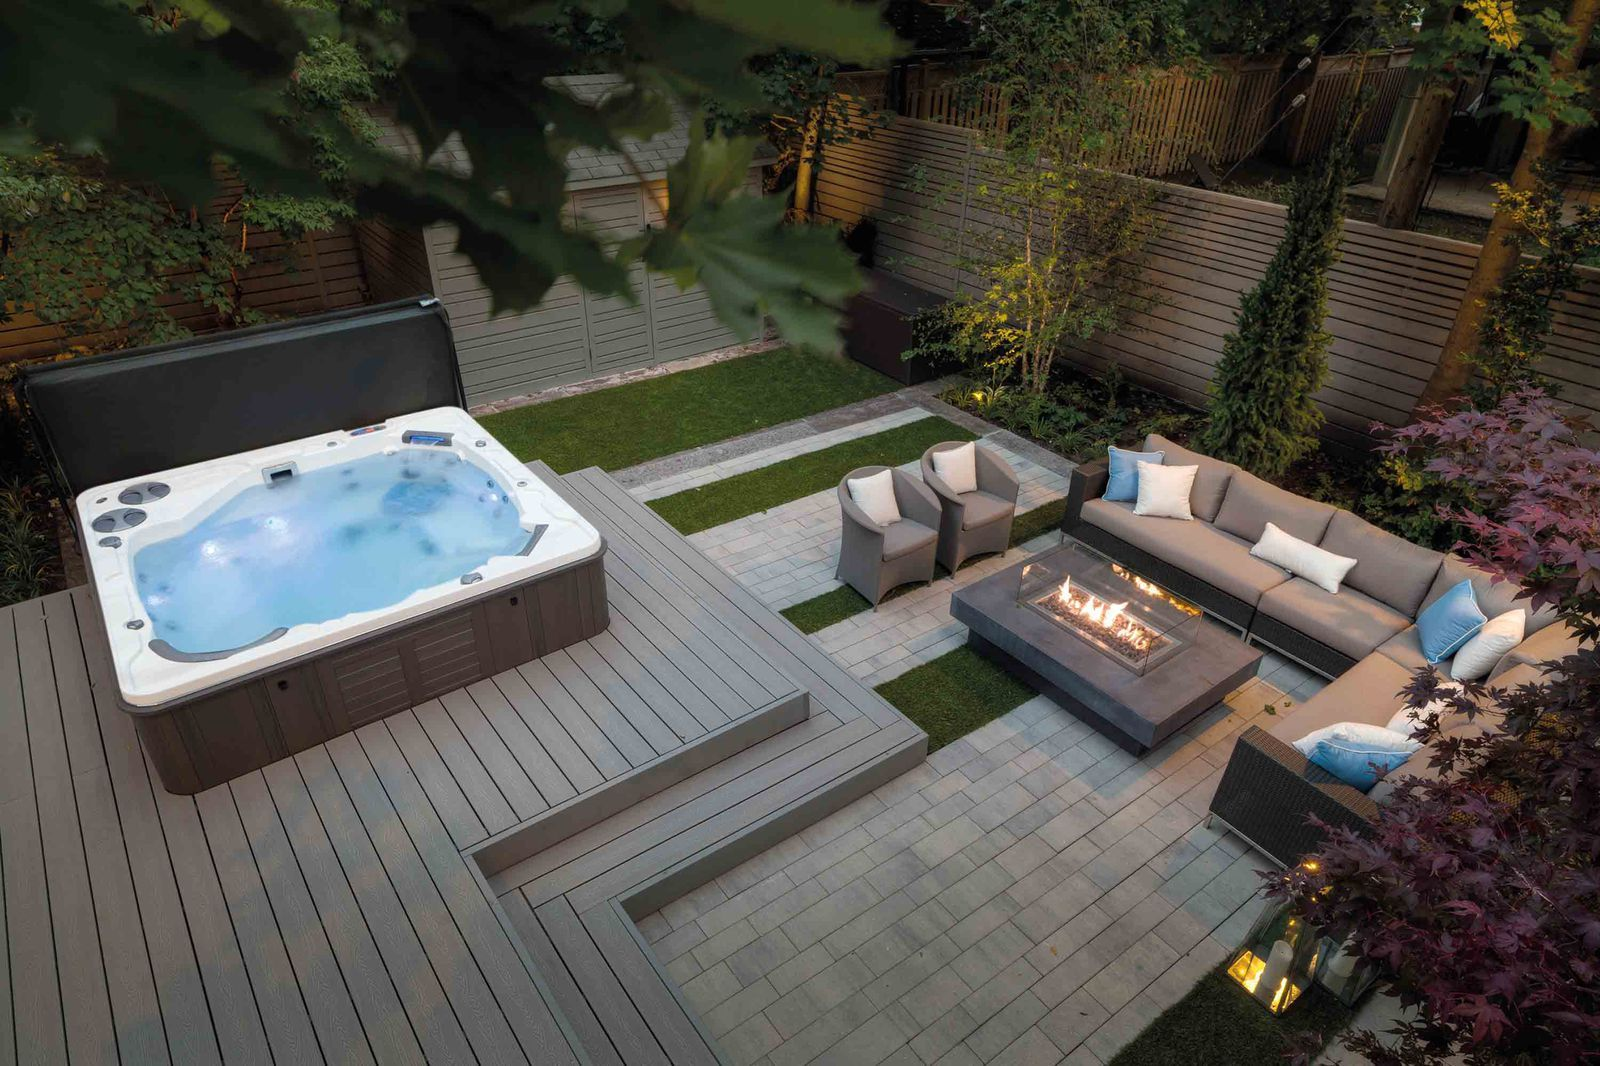 New! Introducing the House Beautiful hot tub and swim spa collection #hottubdeck